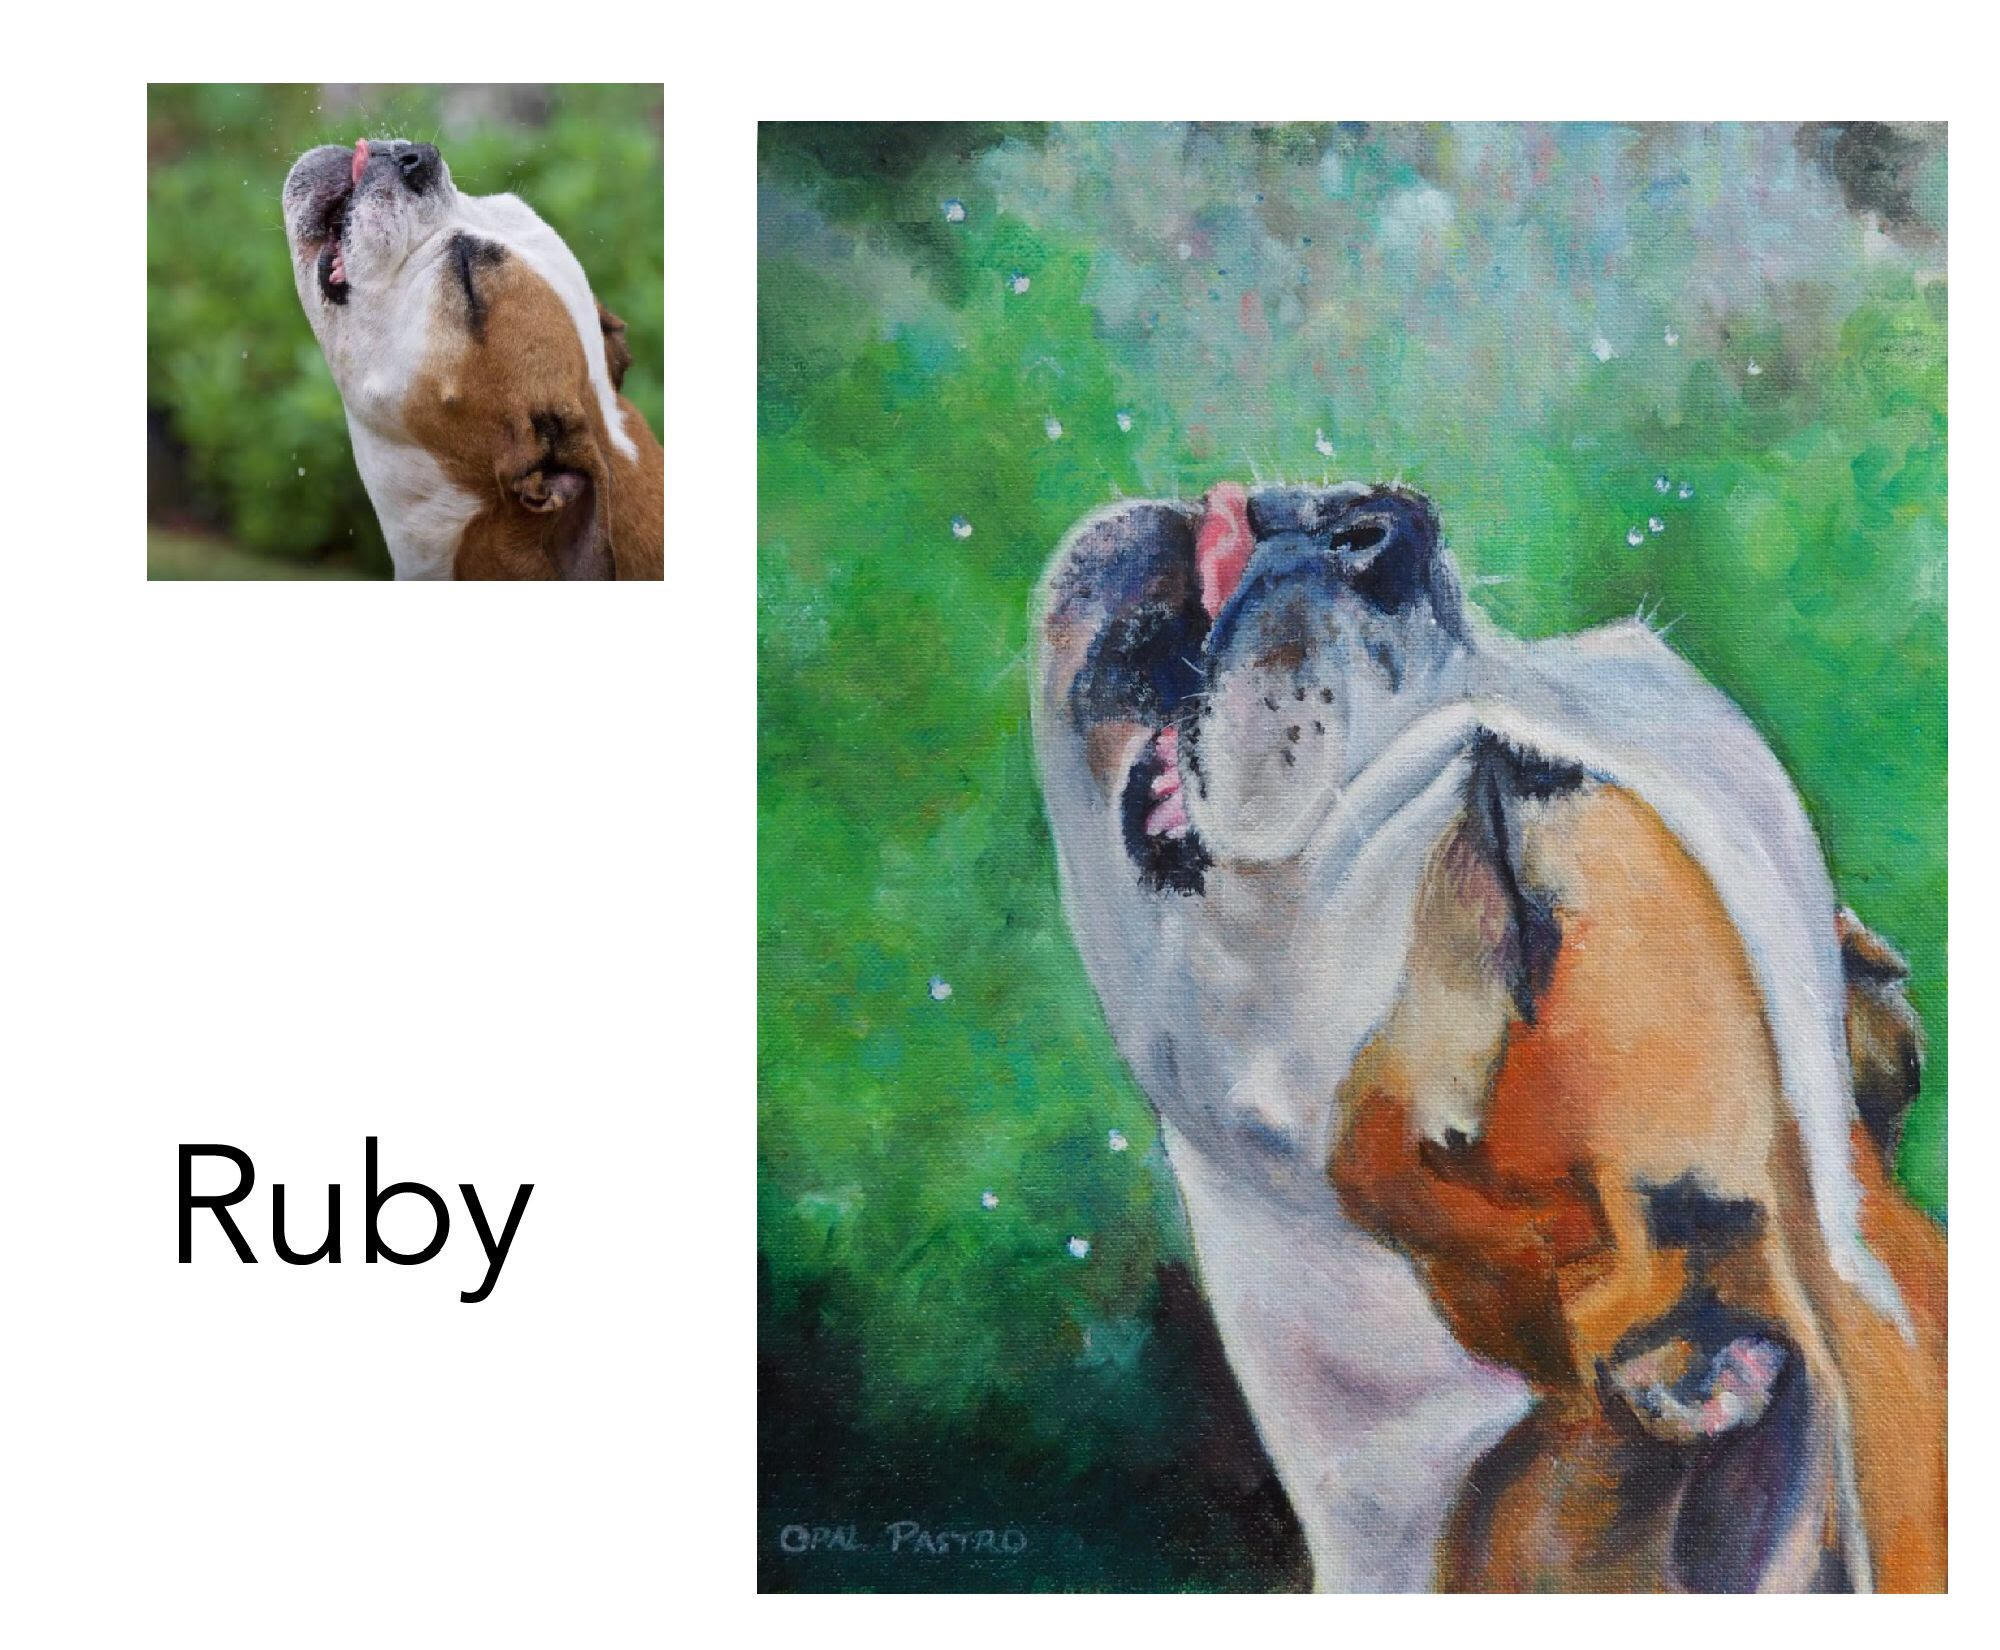 "Australian Bulldog - Acrylic and oil on canvas 10"" x 12""  (25.4cm x 30.48cm)Private commissionHungry Head, NSW———————————Ruby is a real character who was photographed catching the dripping raindrops from the eave of the shed. It was the perfect description of Ruby's beautiful fun-loving nature and just had to be painted."